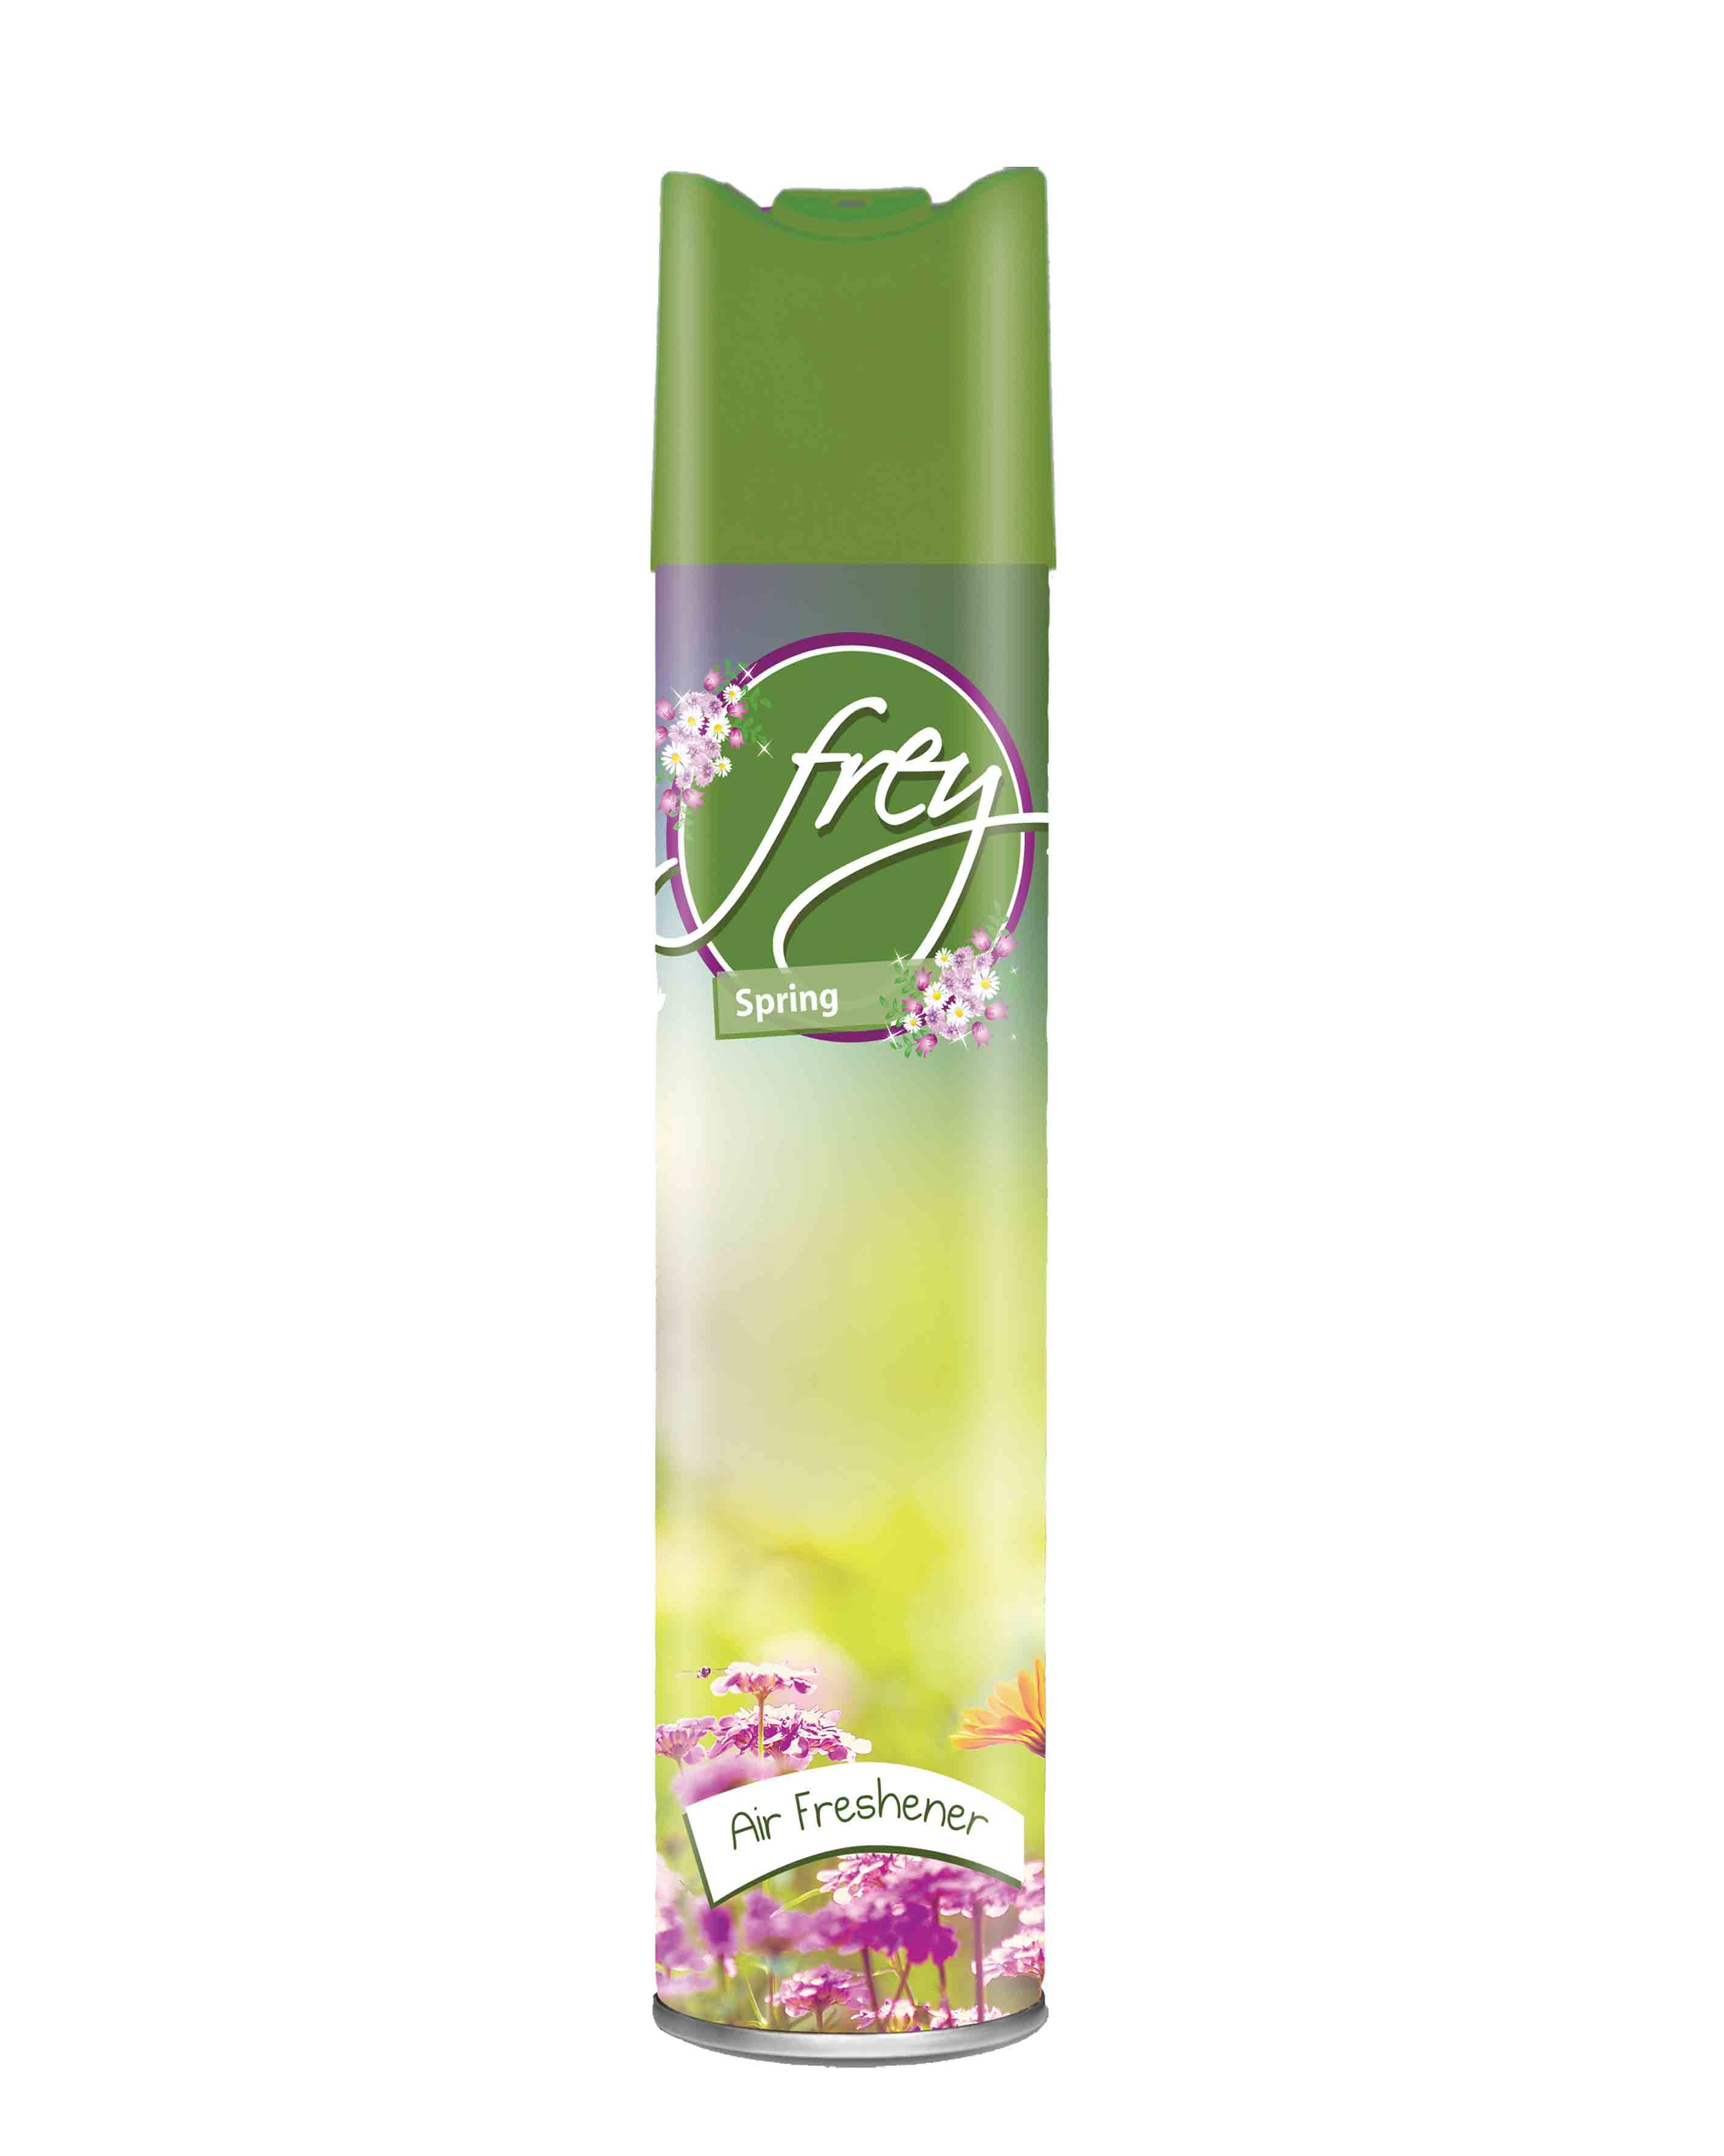 Frey Spring Air Freshener 300ml